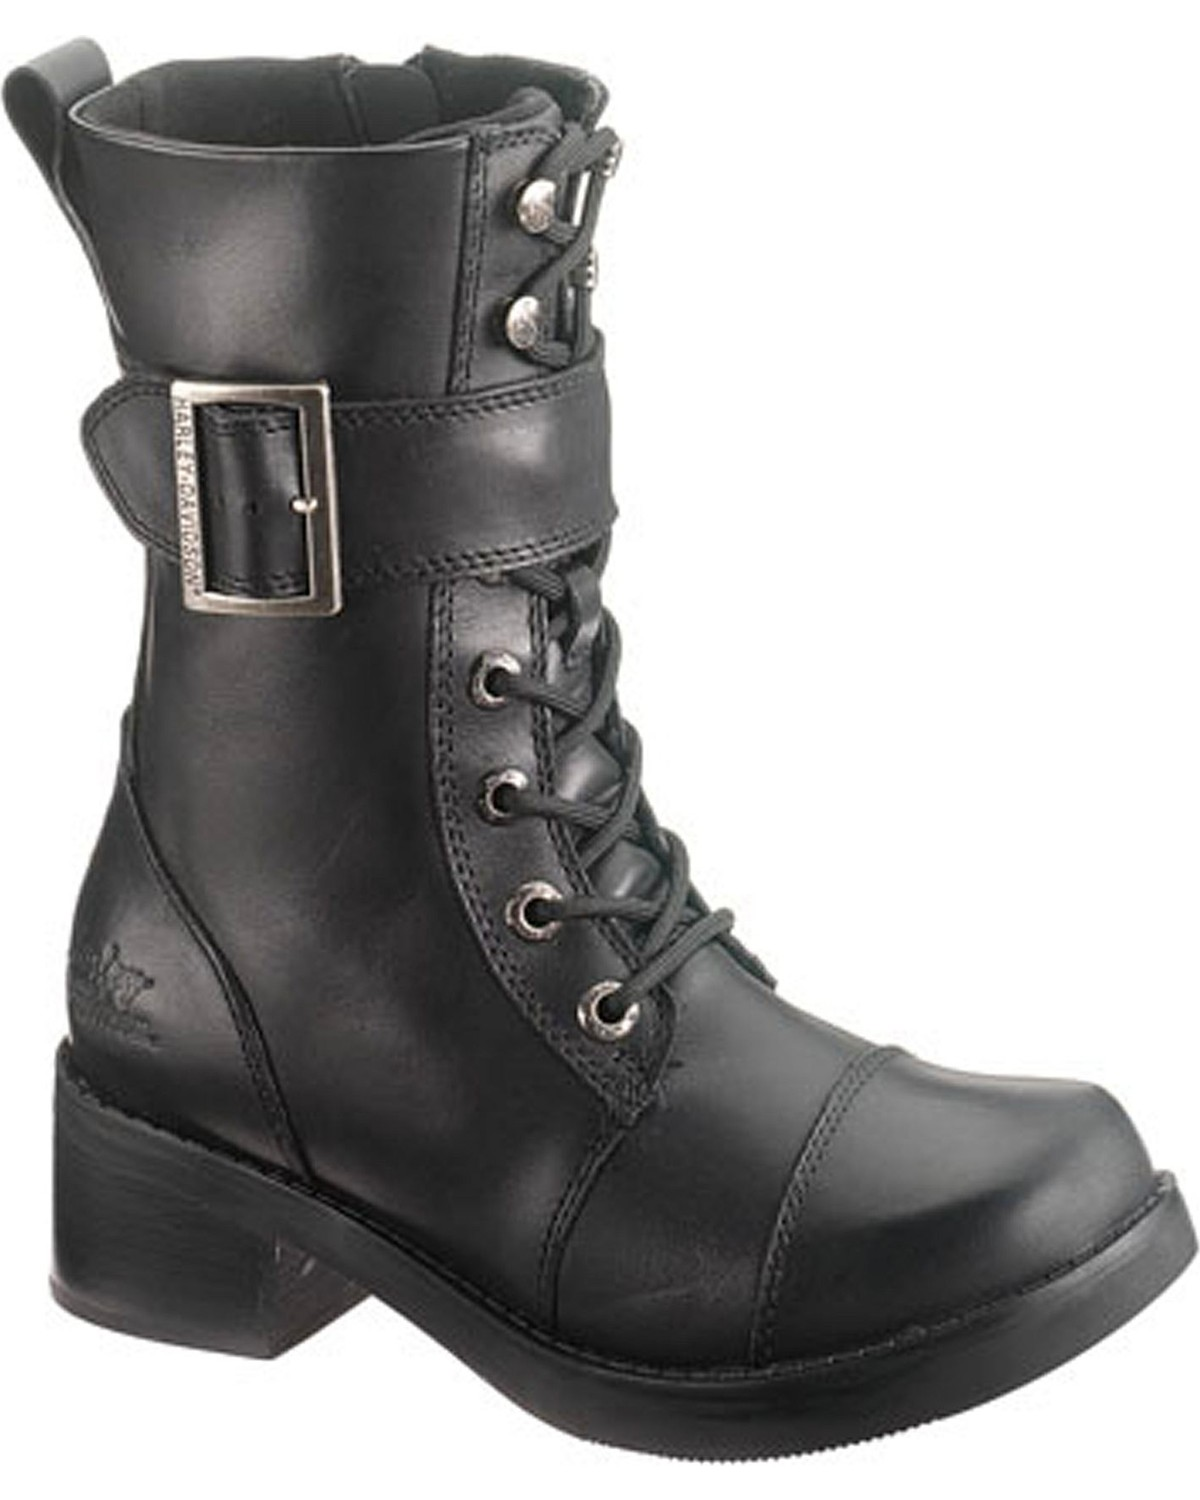 Women Boots Harley Davidson EDA - Lace-up boots - blackharley davidson sale boots clearanceharley davidson sale boots cheap best-loved